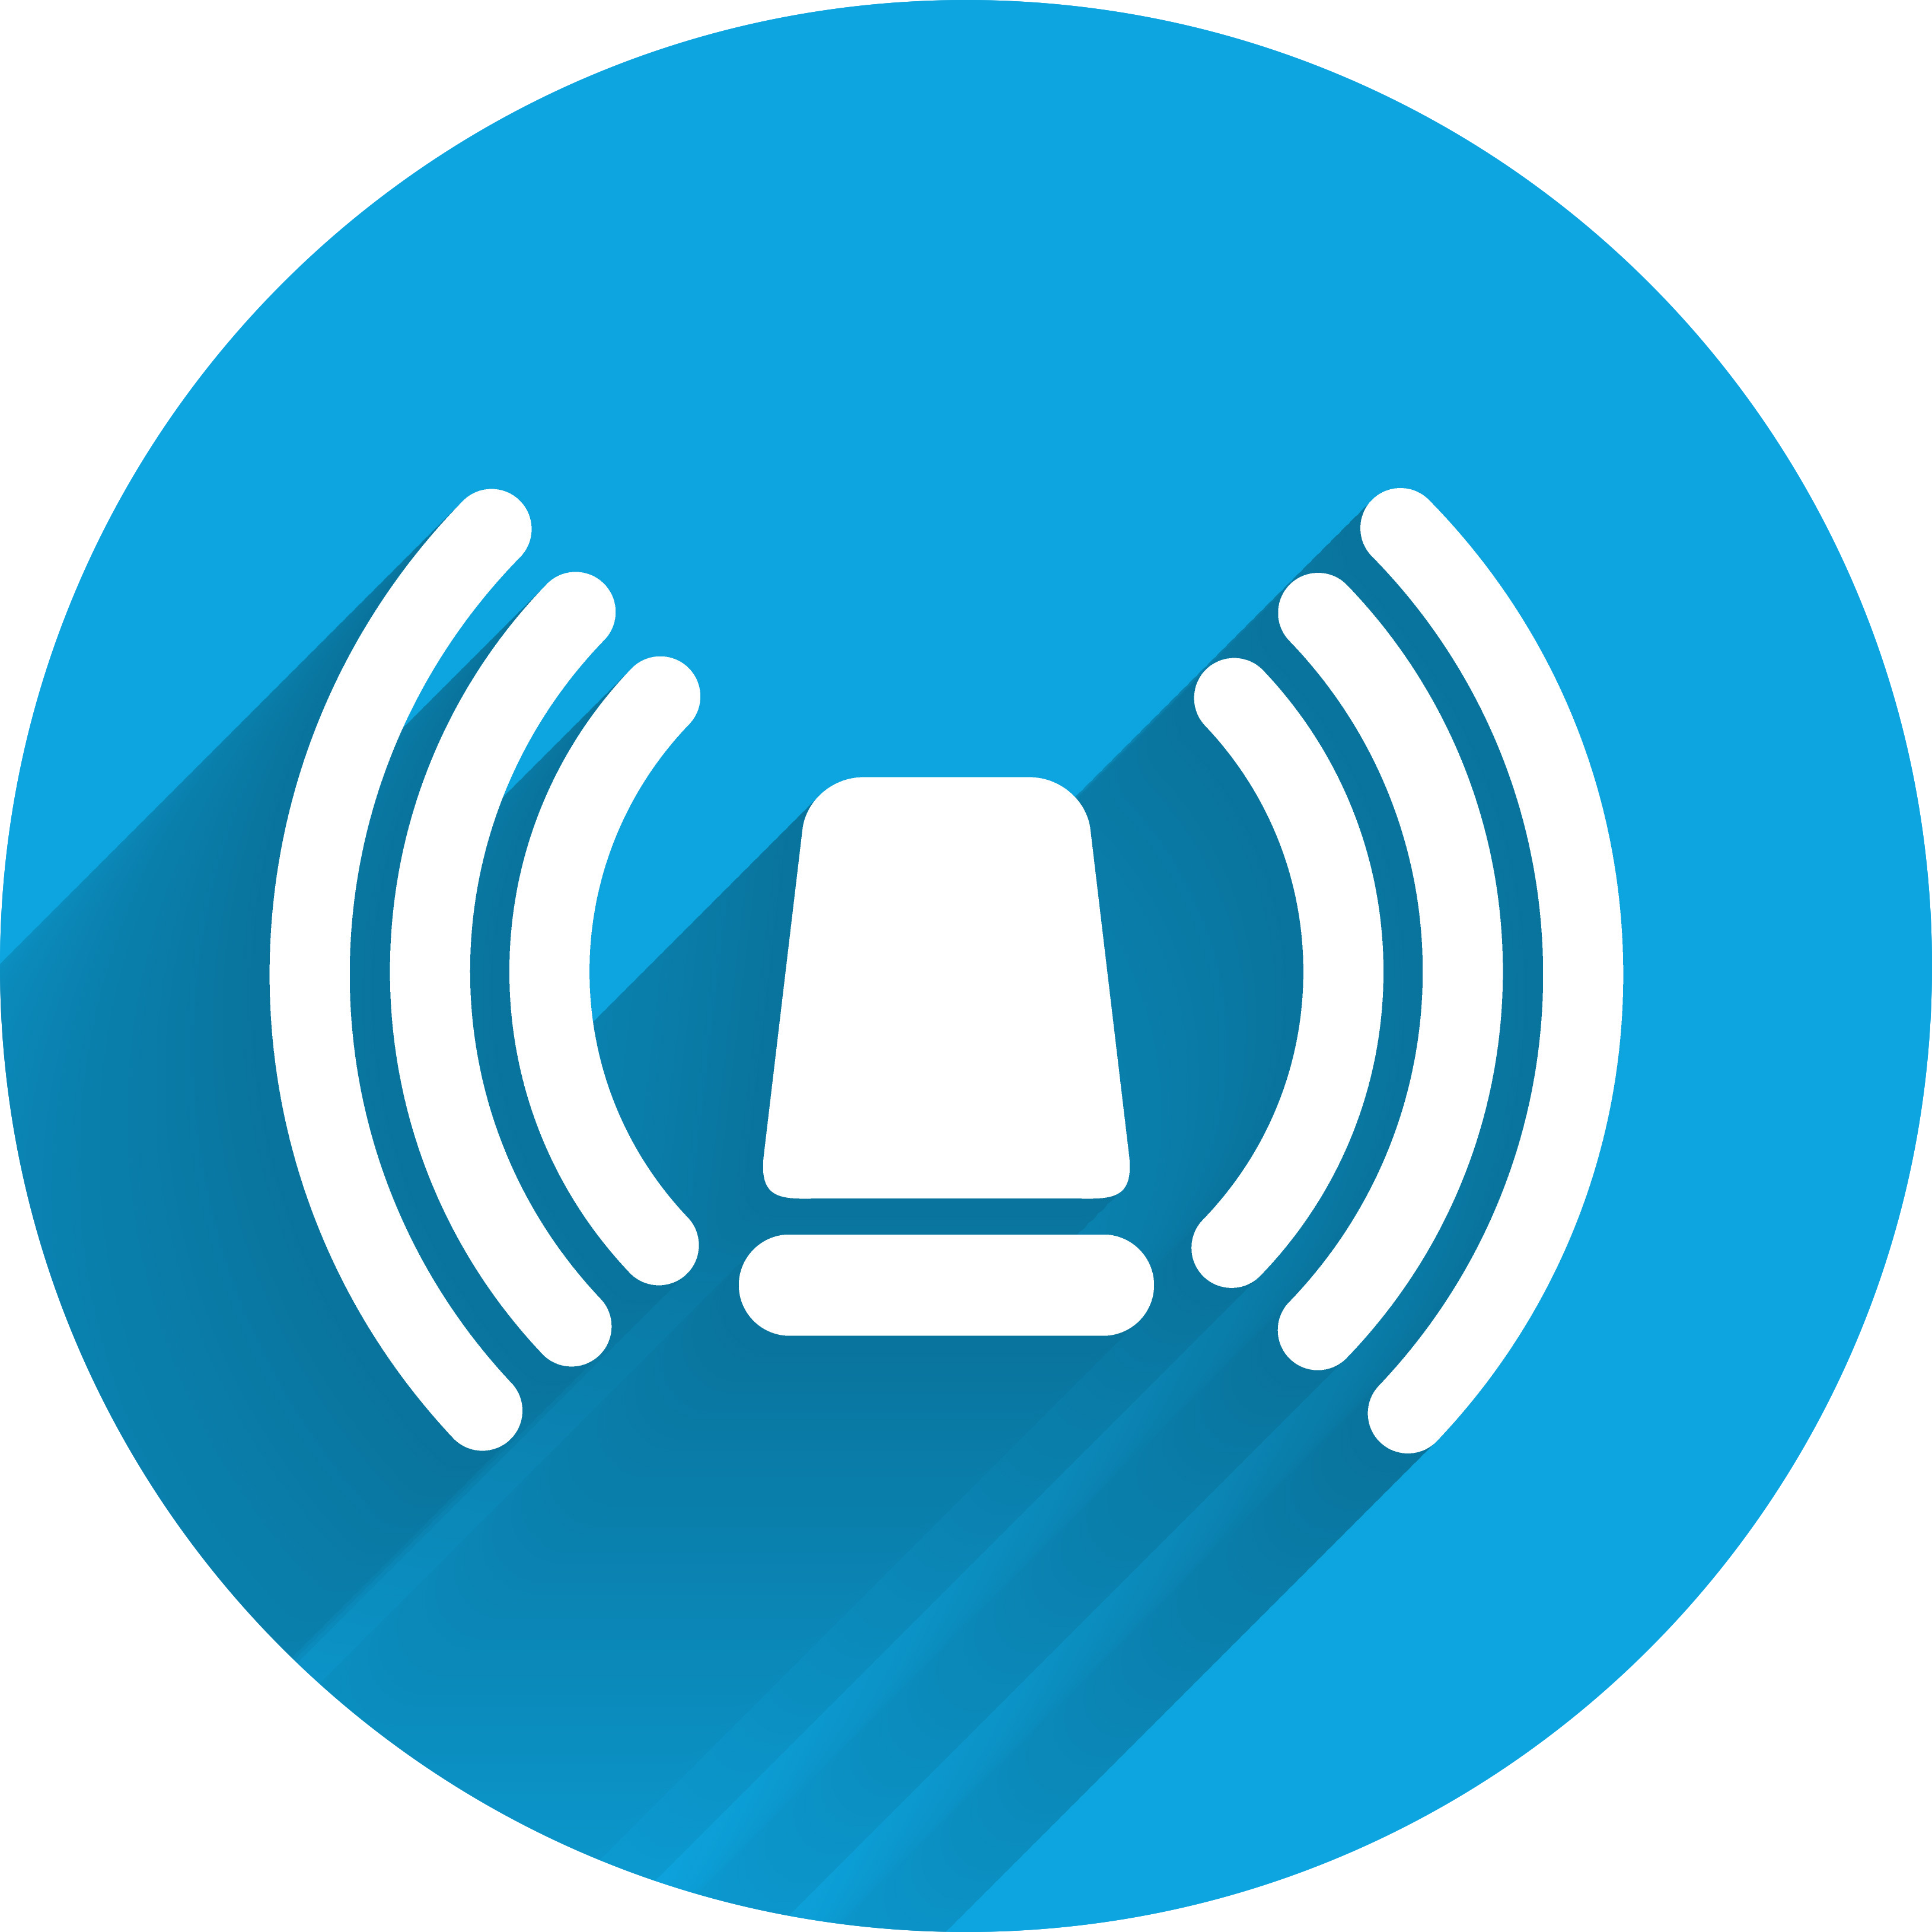 Beacons in retail